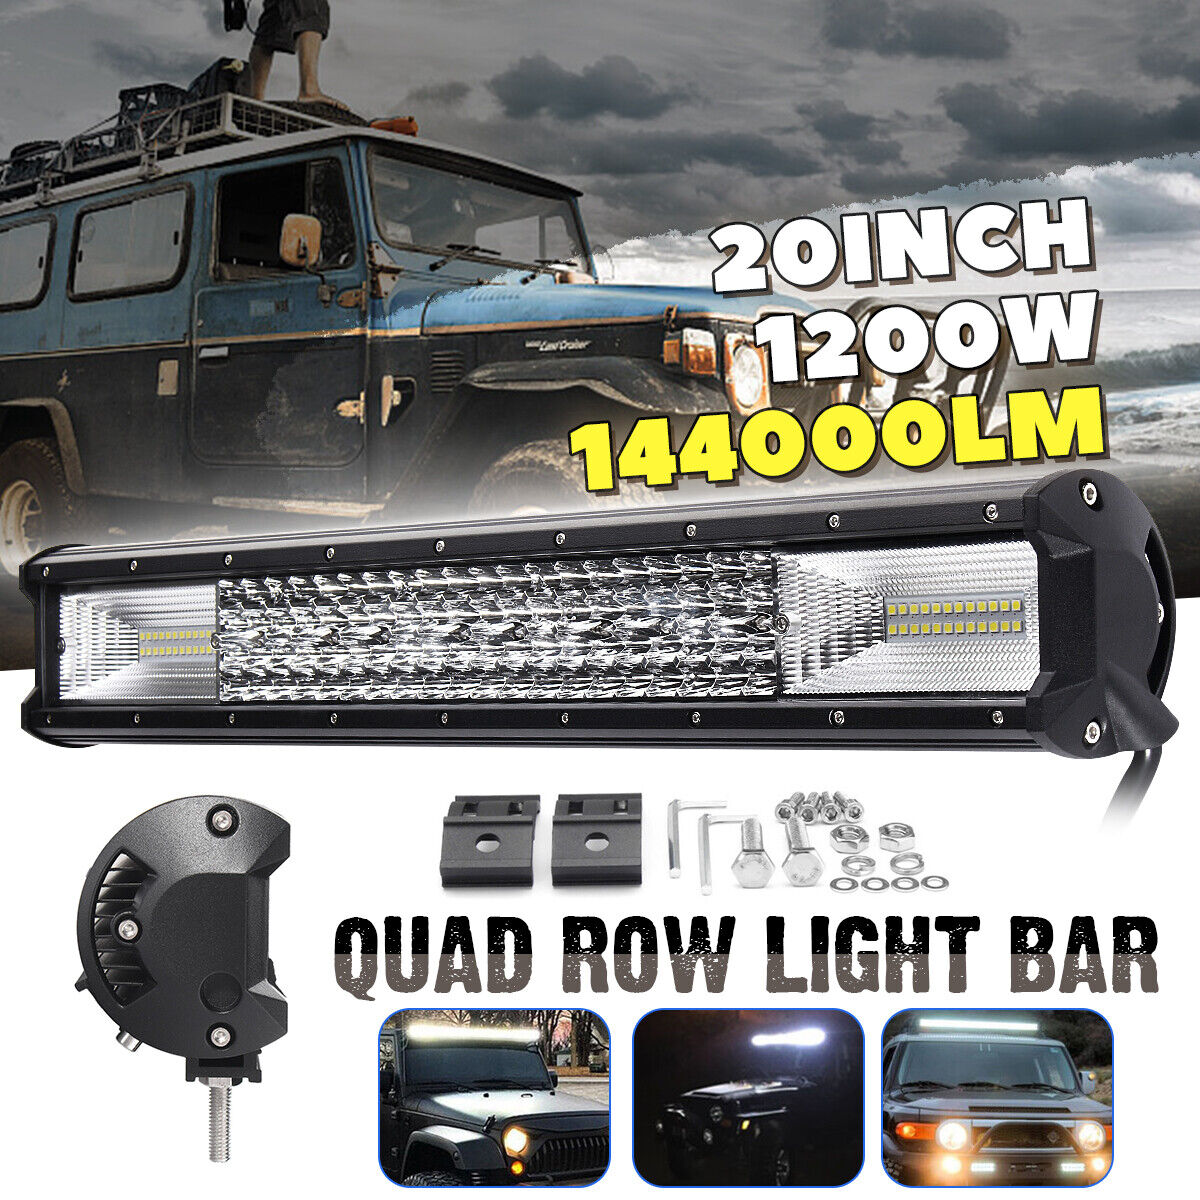 Wiring 52 Inch 1560W LED 5D Curved Work Light Bar Combo Beam Offroad SUV Truck